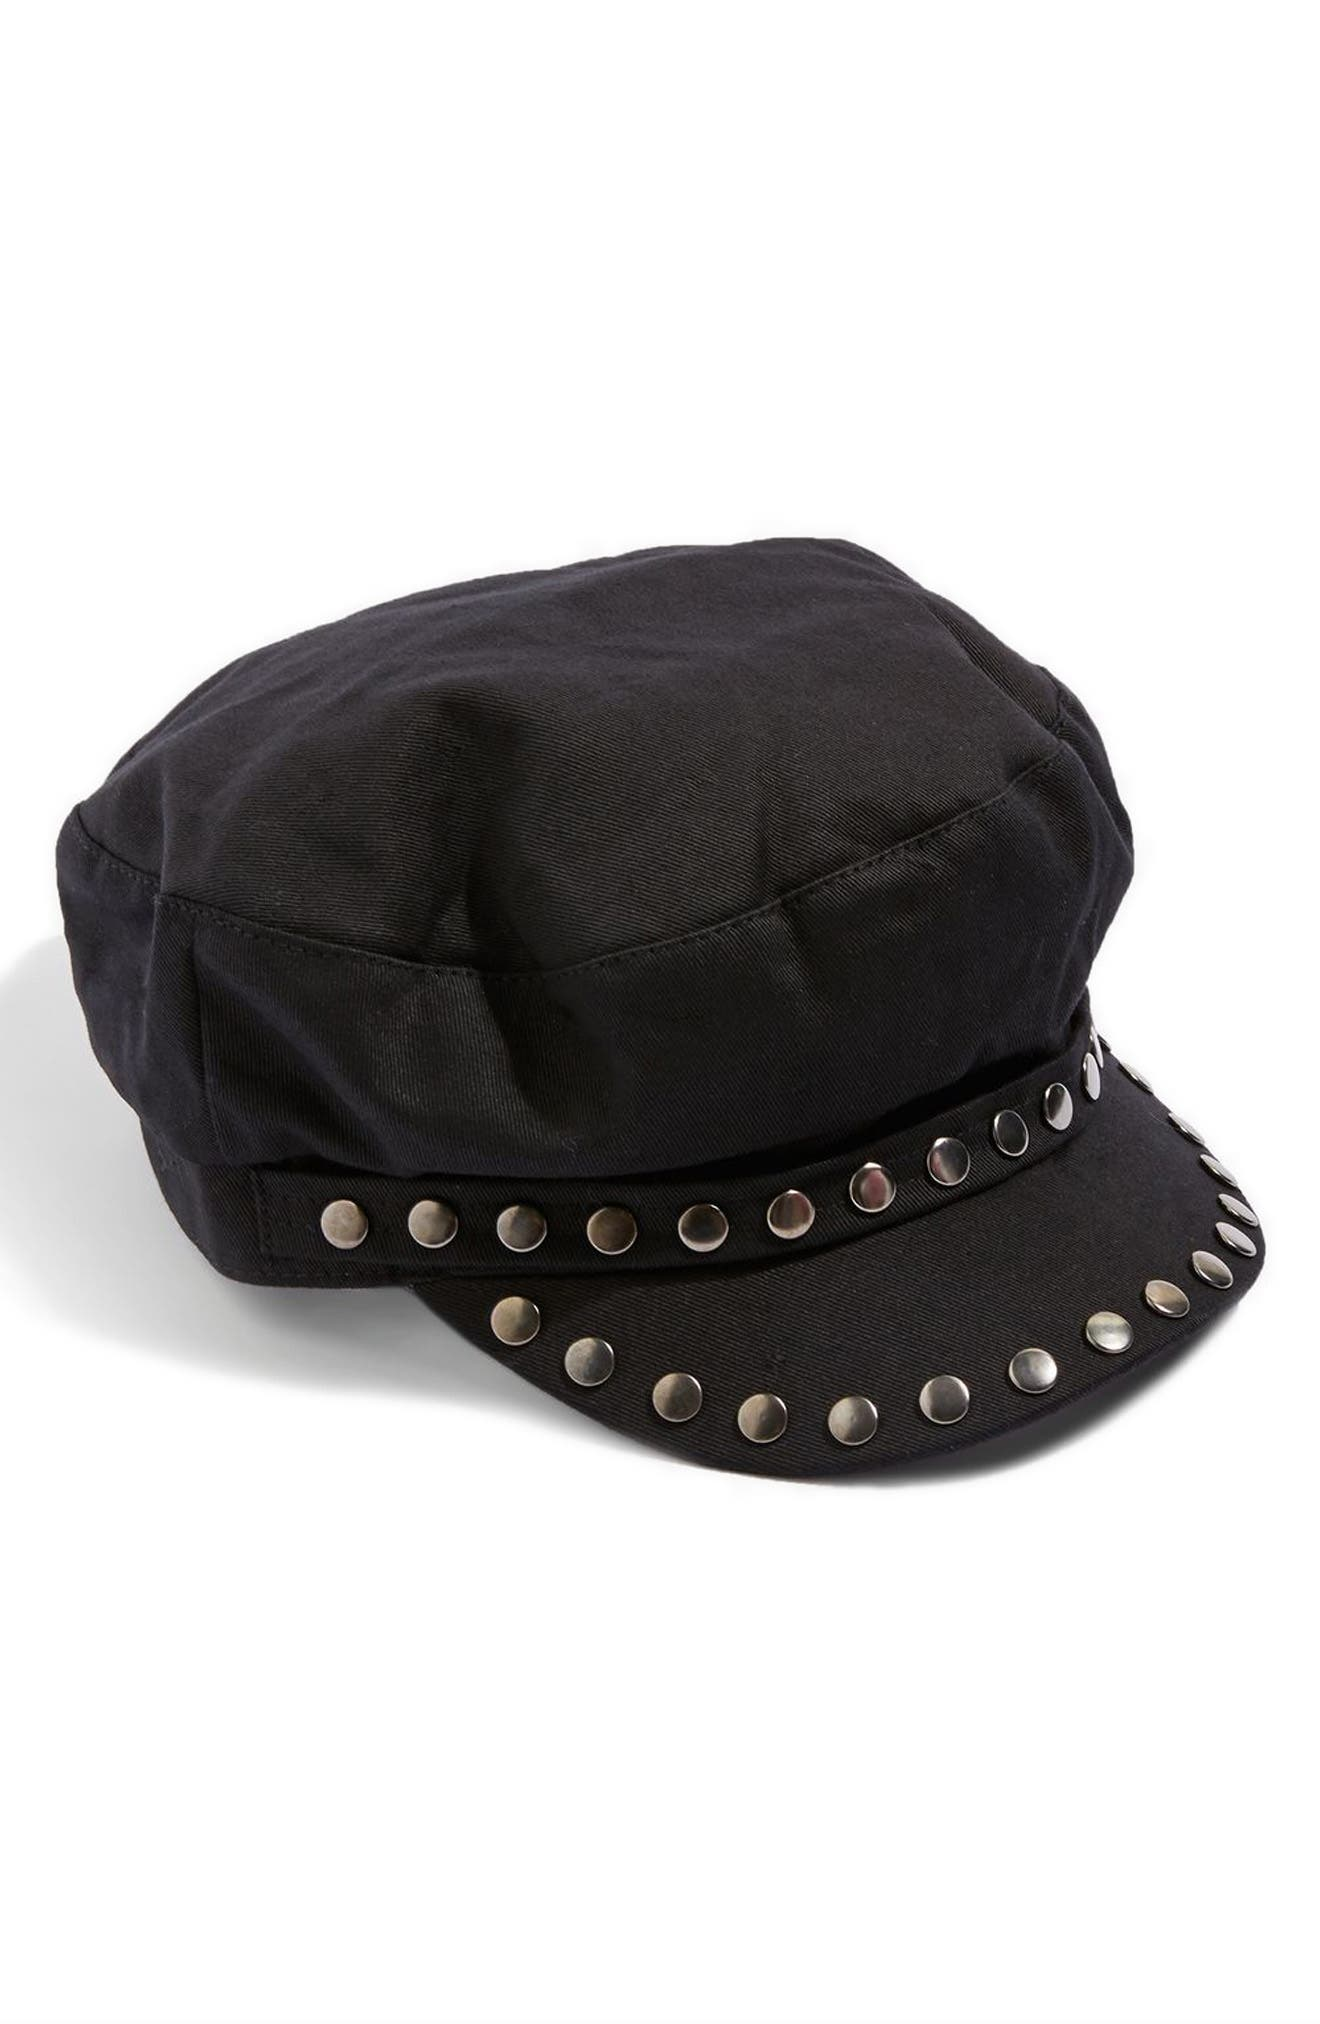 Studded Baker Boy Cap,                         Main,                         color, Black Multi